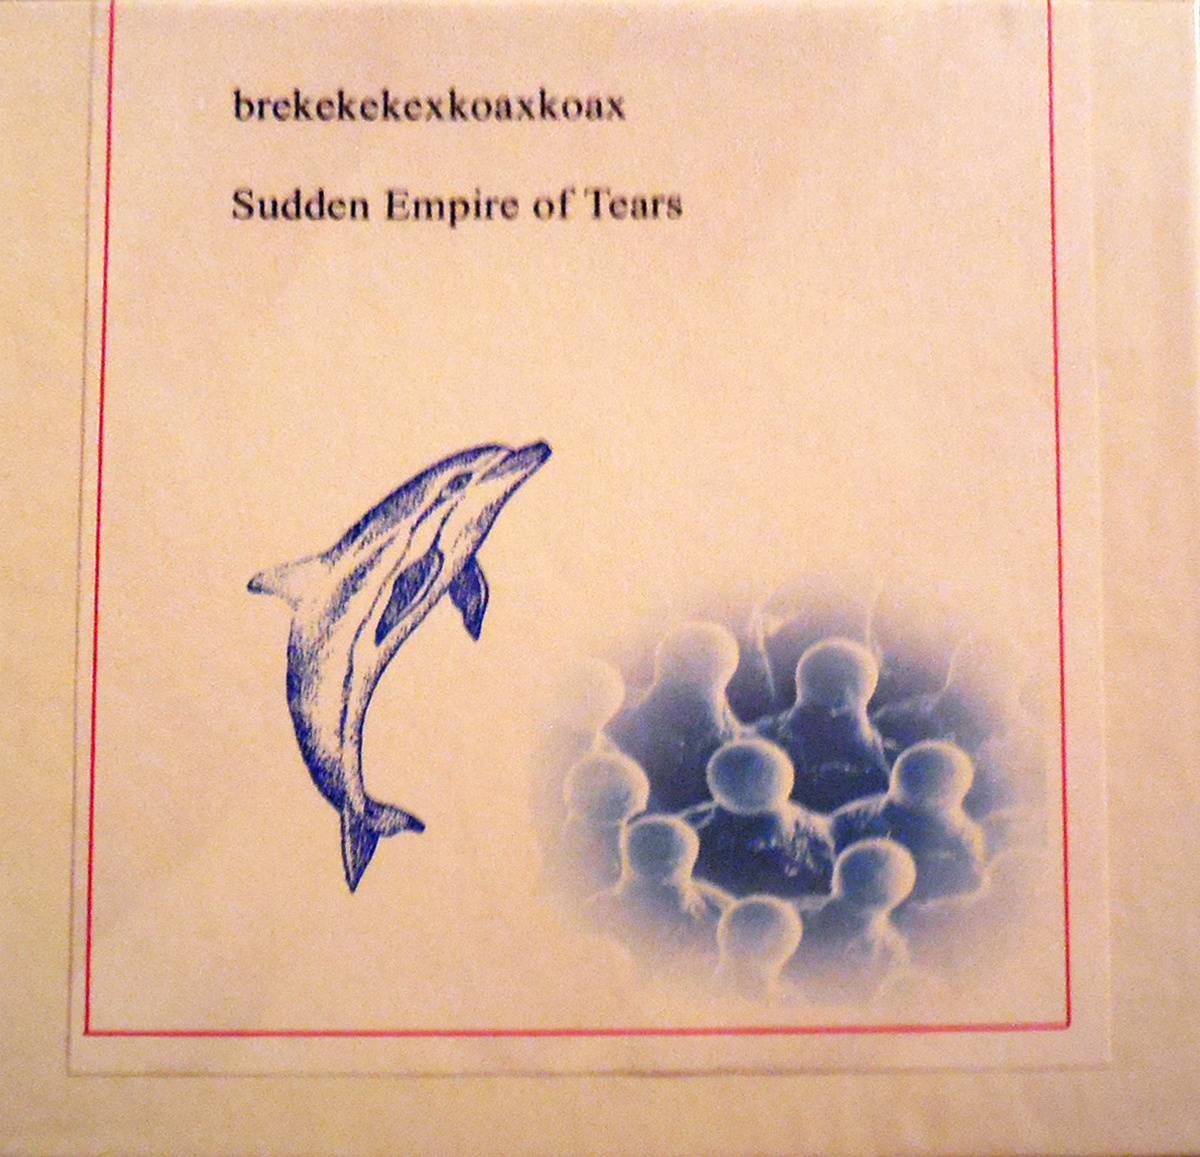 brekekekexkoaxkoax - Sudden Empire of Tears